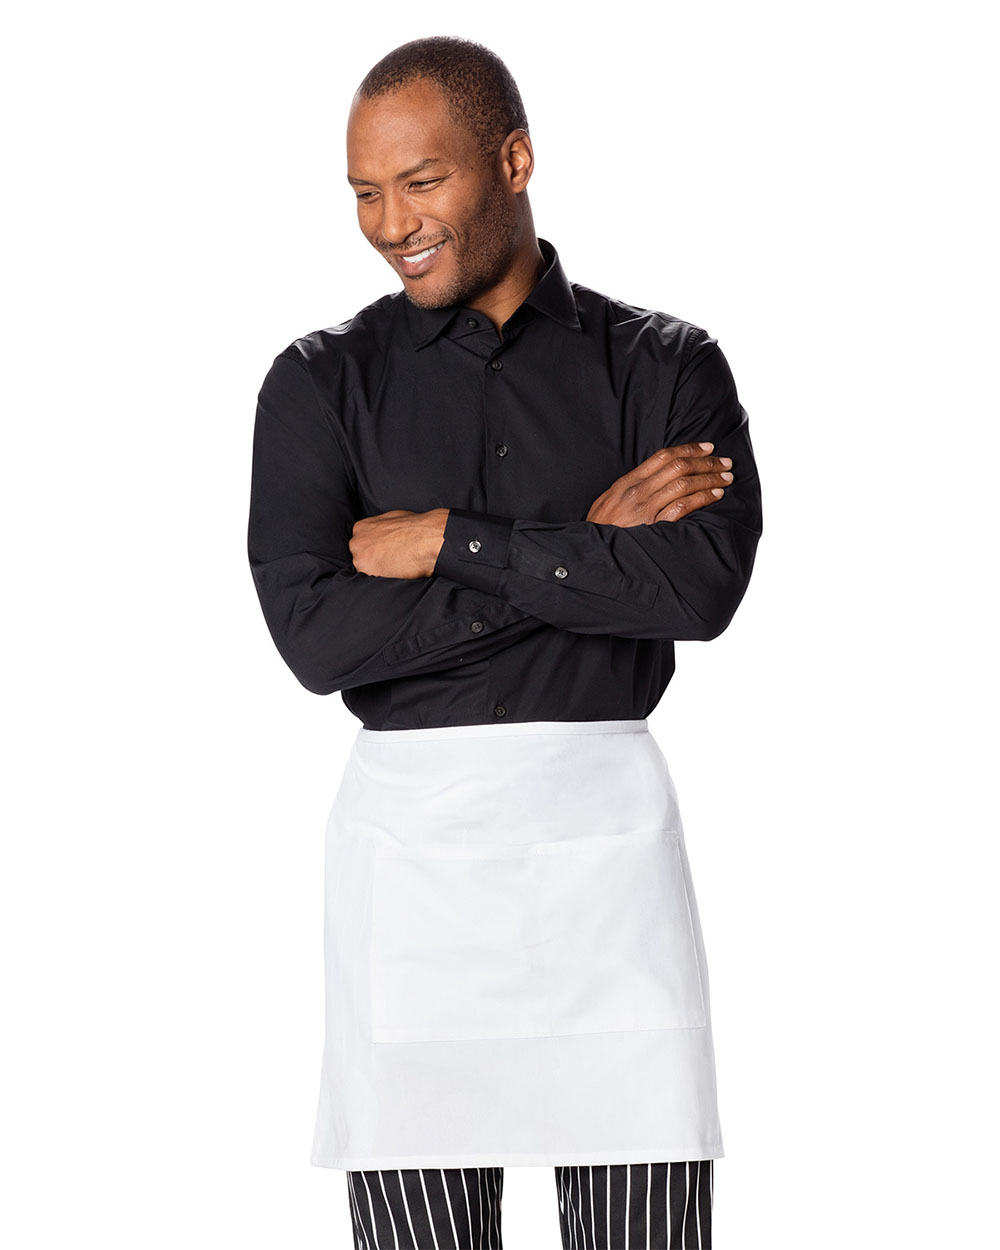 Method Chicago Screen Printing and Embroidery - Custom Printed Dickies Waist Apron